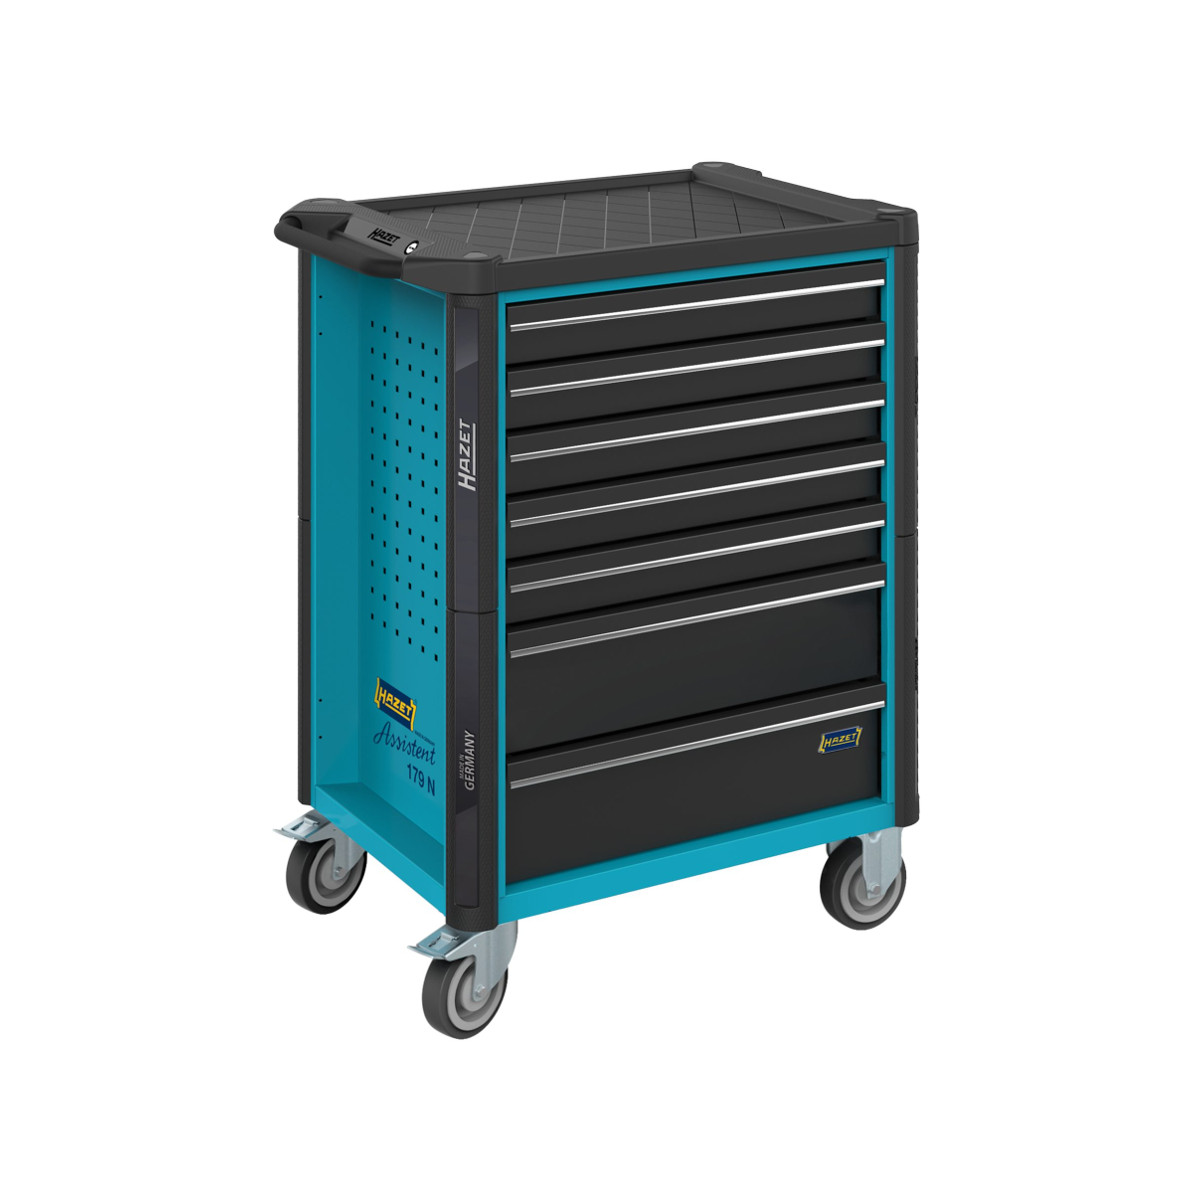 HAZET 179N-8 Tool trolley with 8 drawers